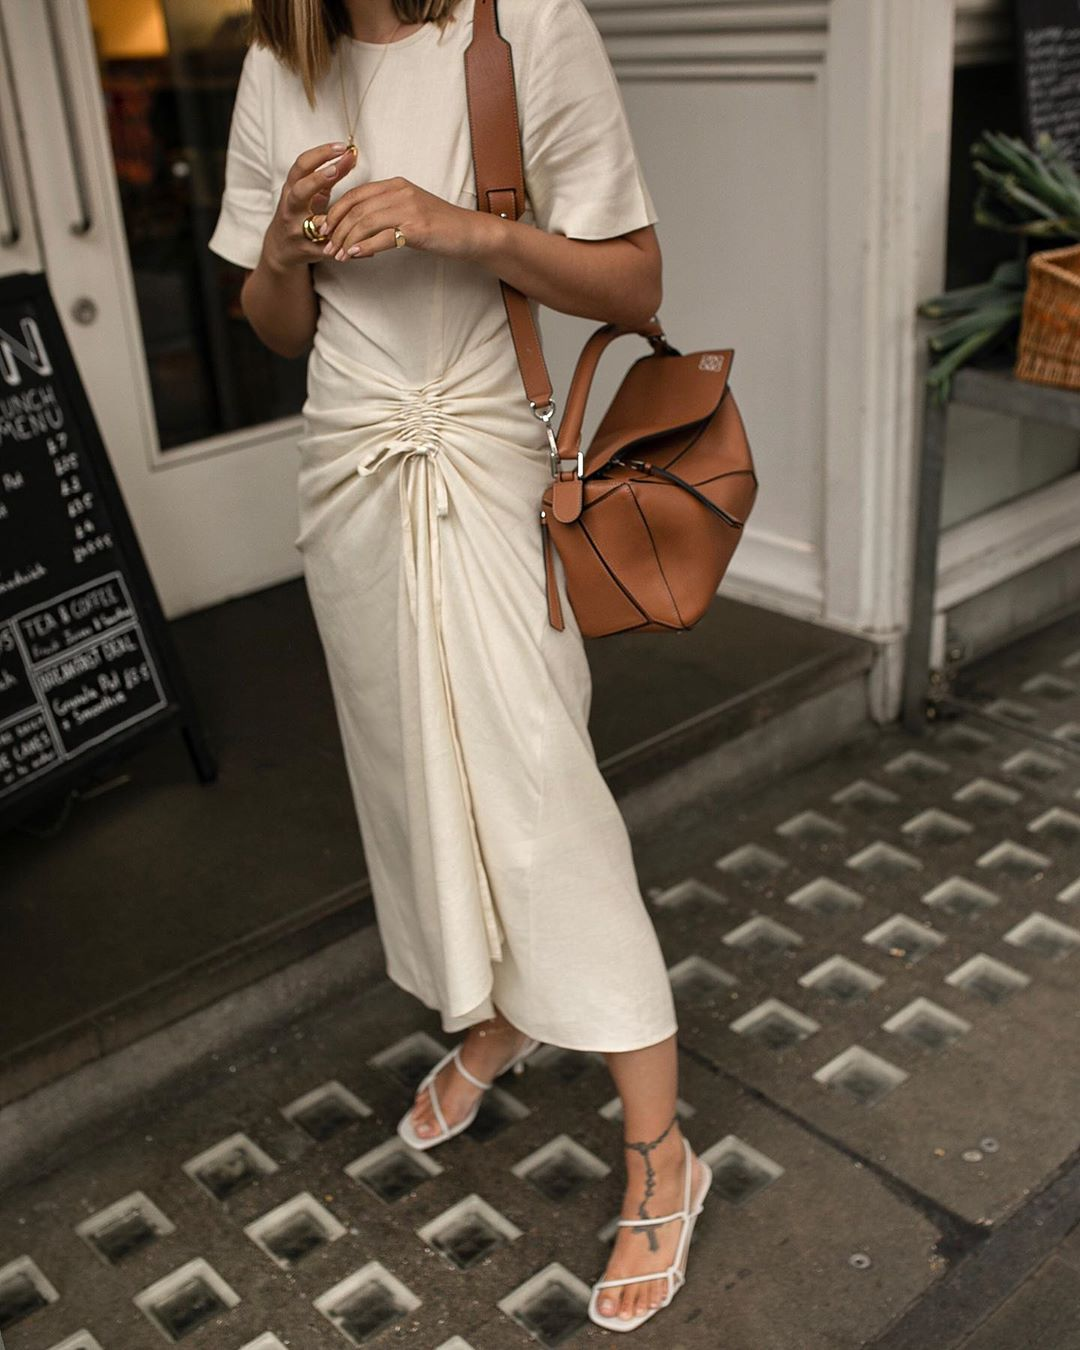 Spring / Summer Instagram Outfit Idea — Beige Ruched Dress, Camel Loewe Puzzle Bag, and Strappy White Sandals